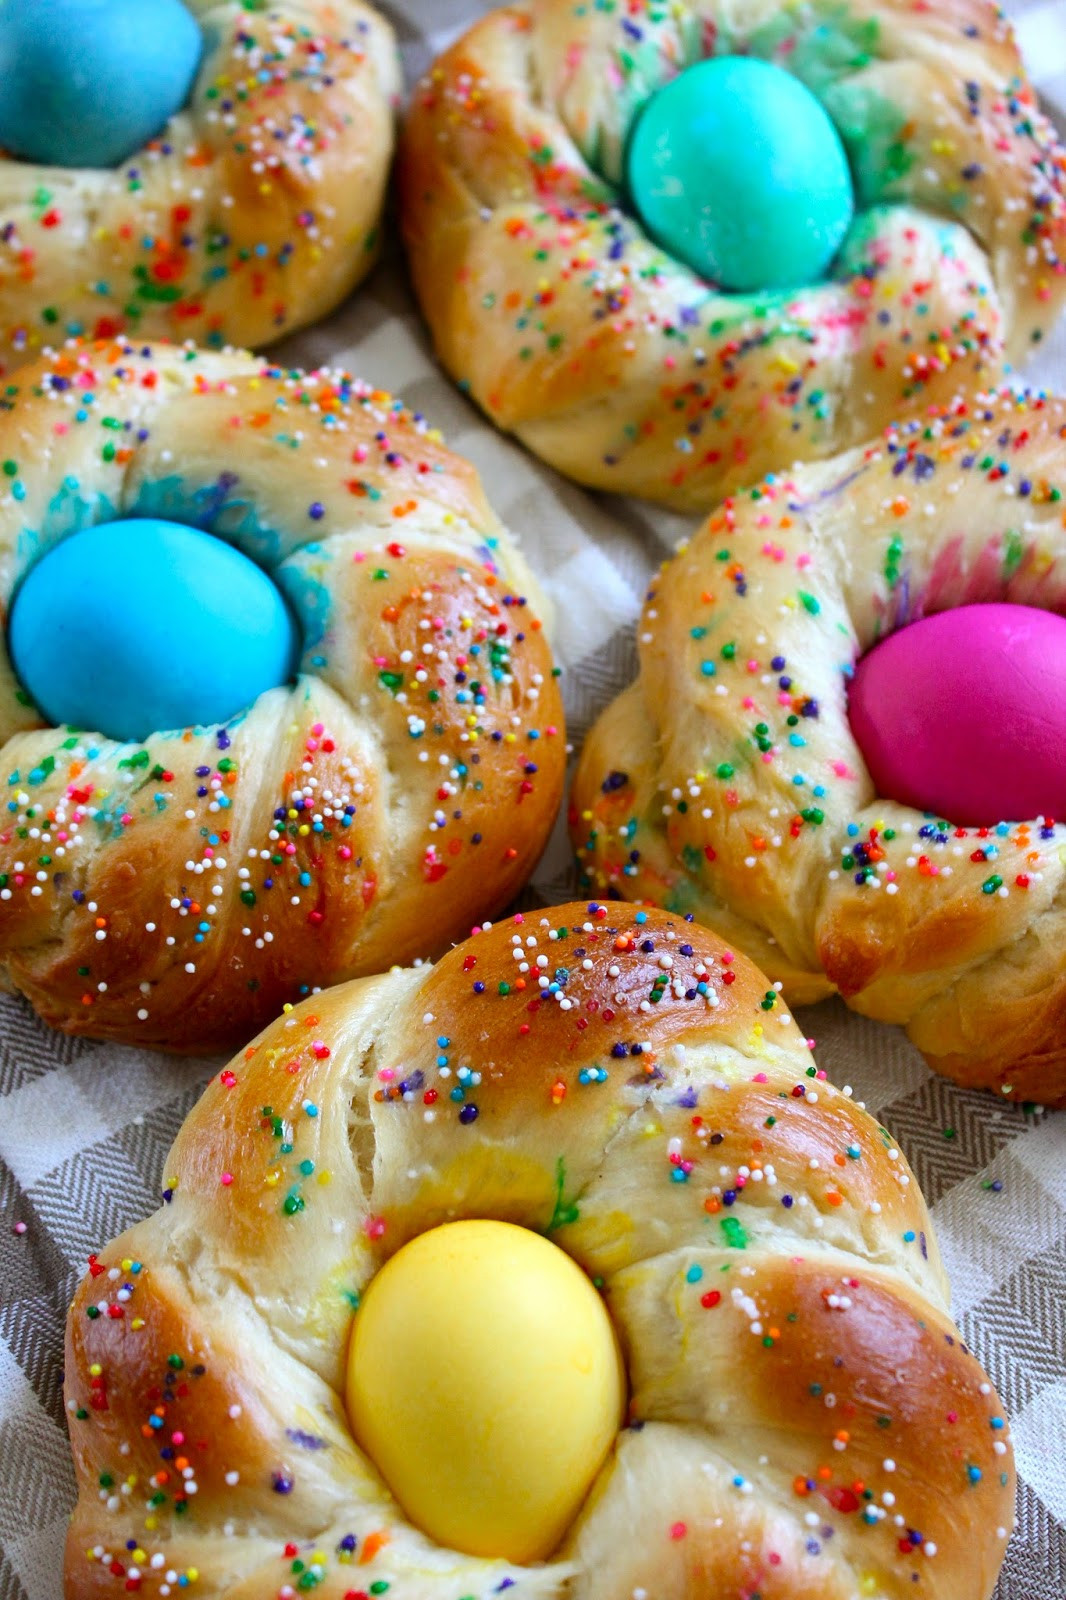 Italian Easter Egg Bread  The Cultural Dish Recipe Italian Easter Egg Bread